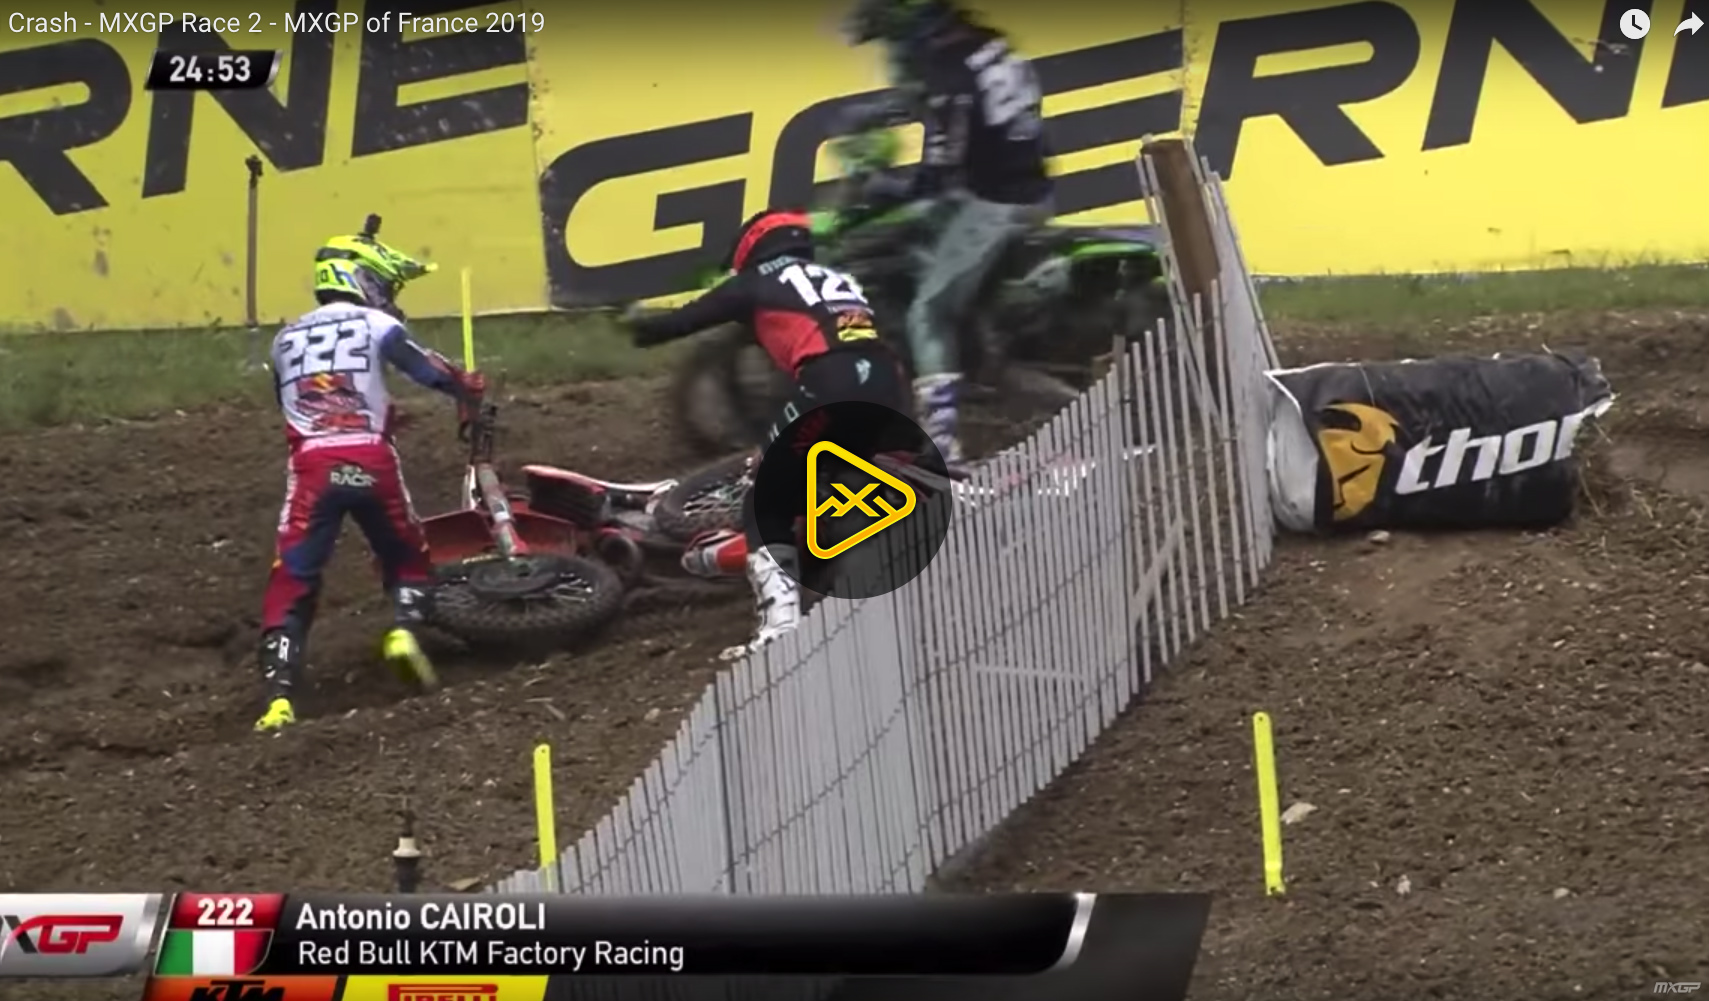 Antonio Cairoli Crash at MXGP of France